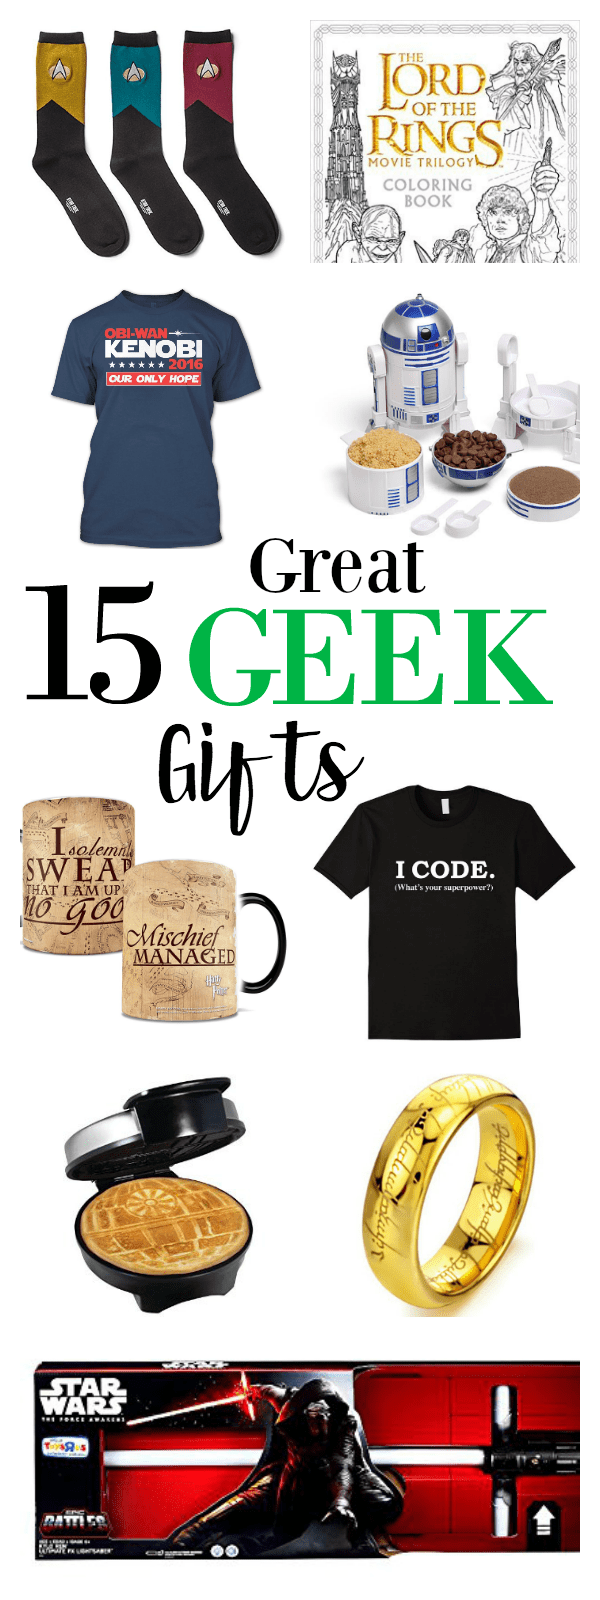 15 Great Geek Gift Ideas